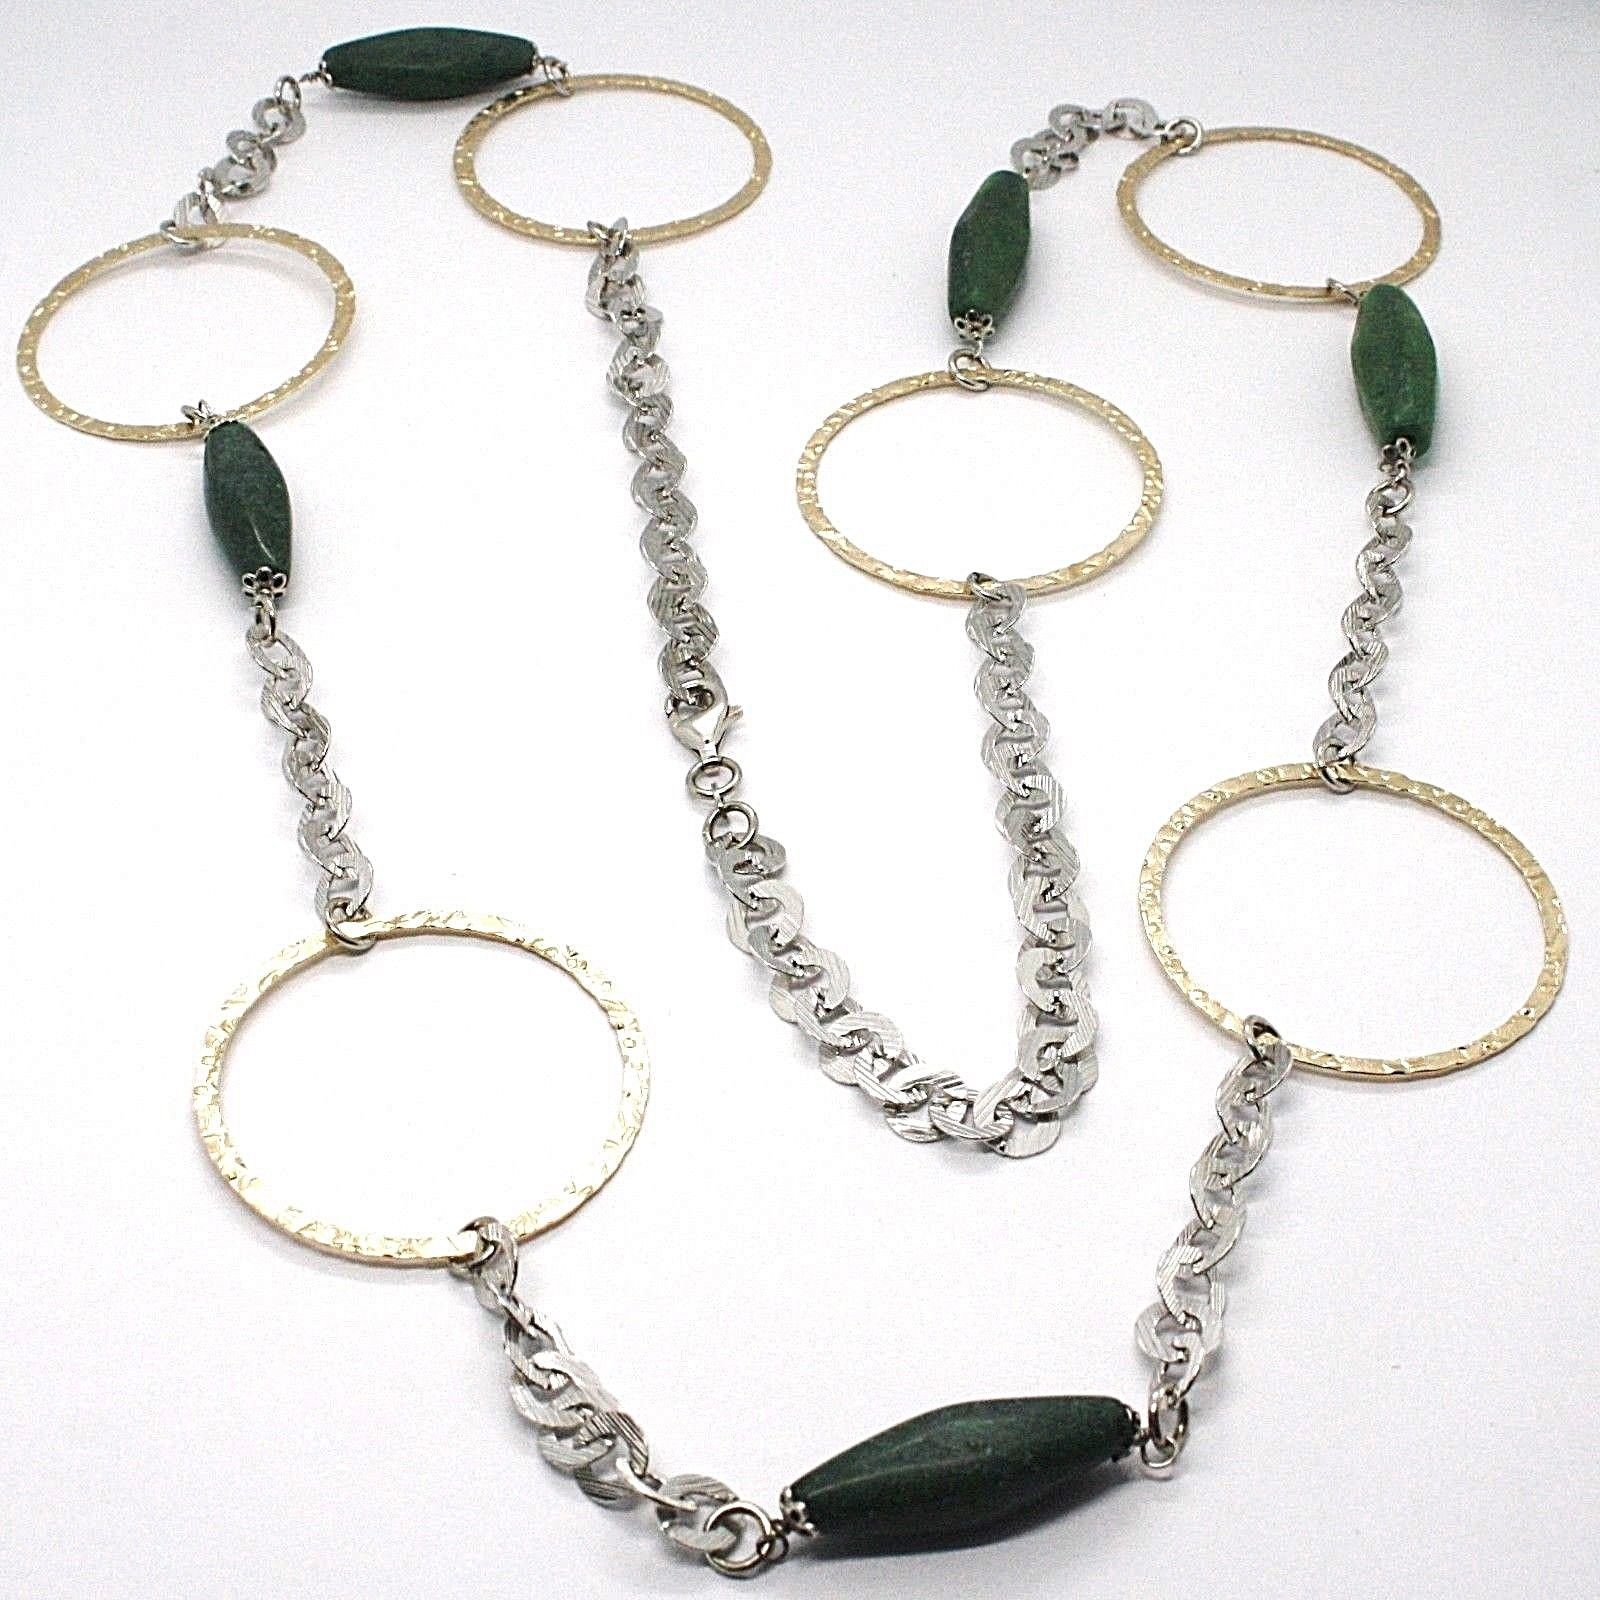 925 Silver Necklace, Jade Green, Yellow Circles, 100 CM, Rolo hammer